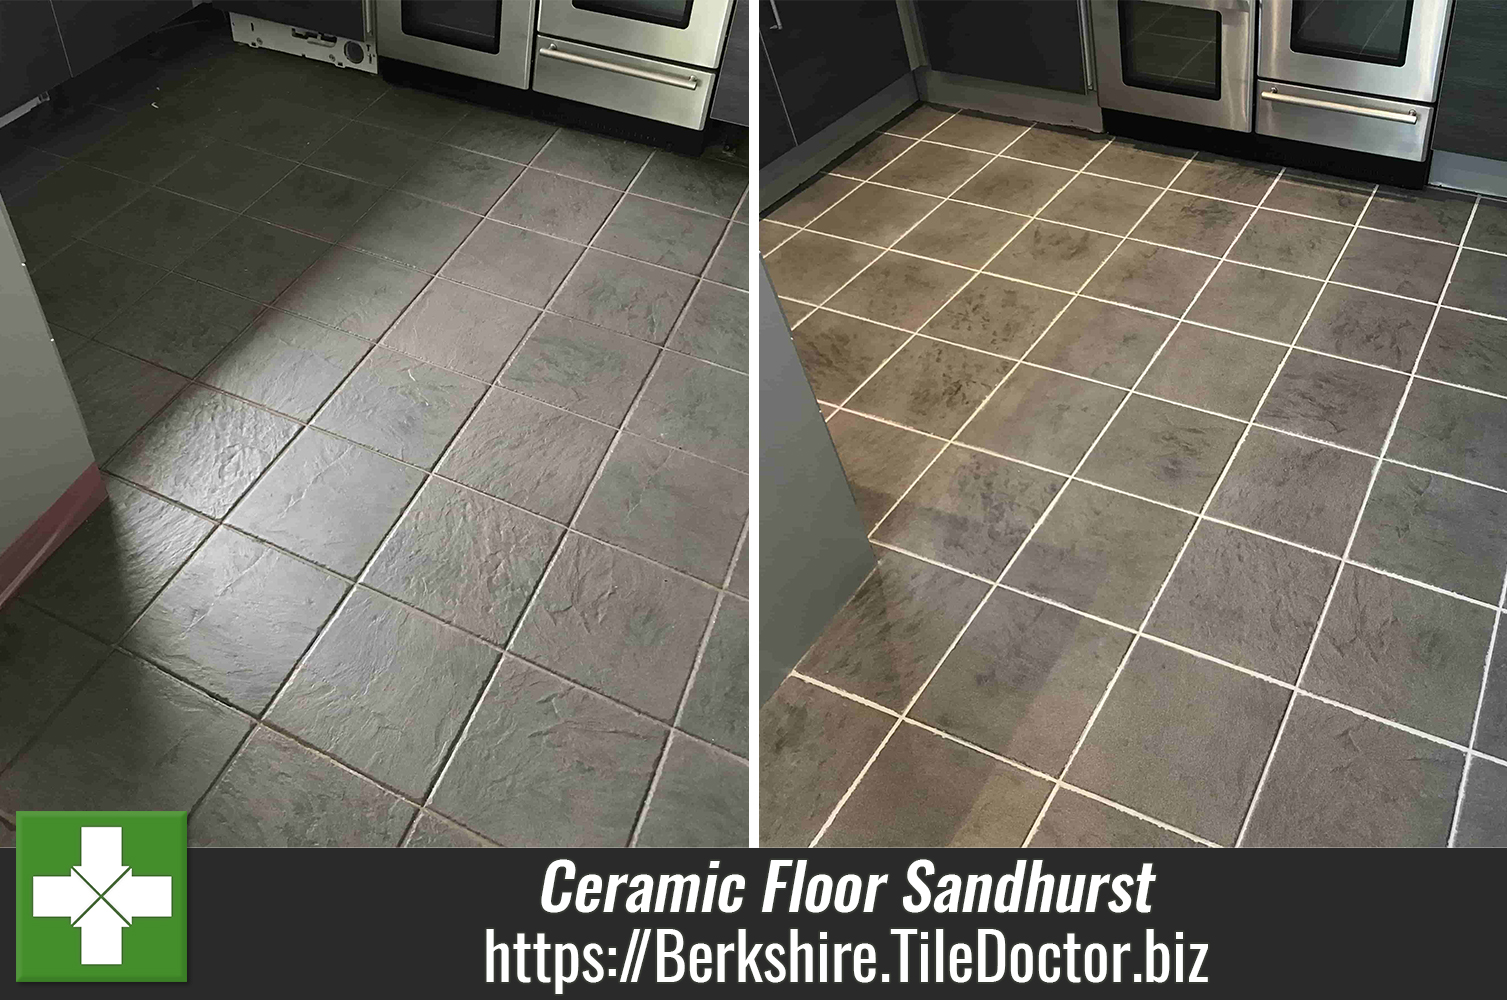 Removing Grout Haze from Ceramic Tile and Grout in a Sandhurst Kitchen